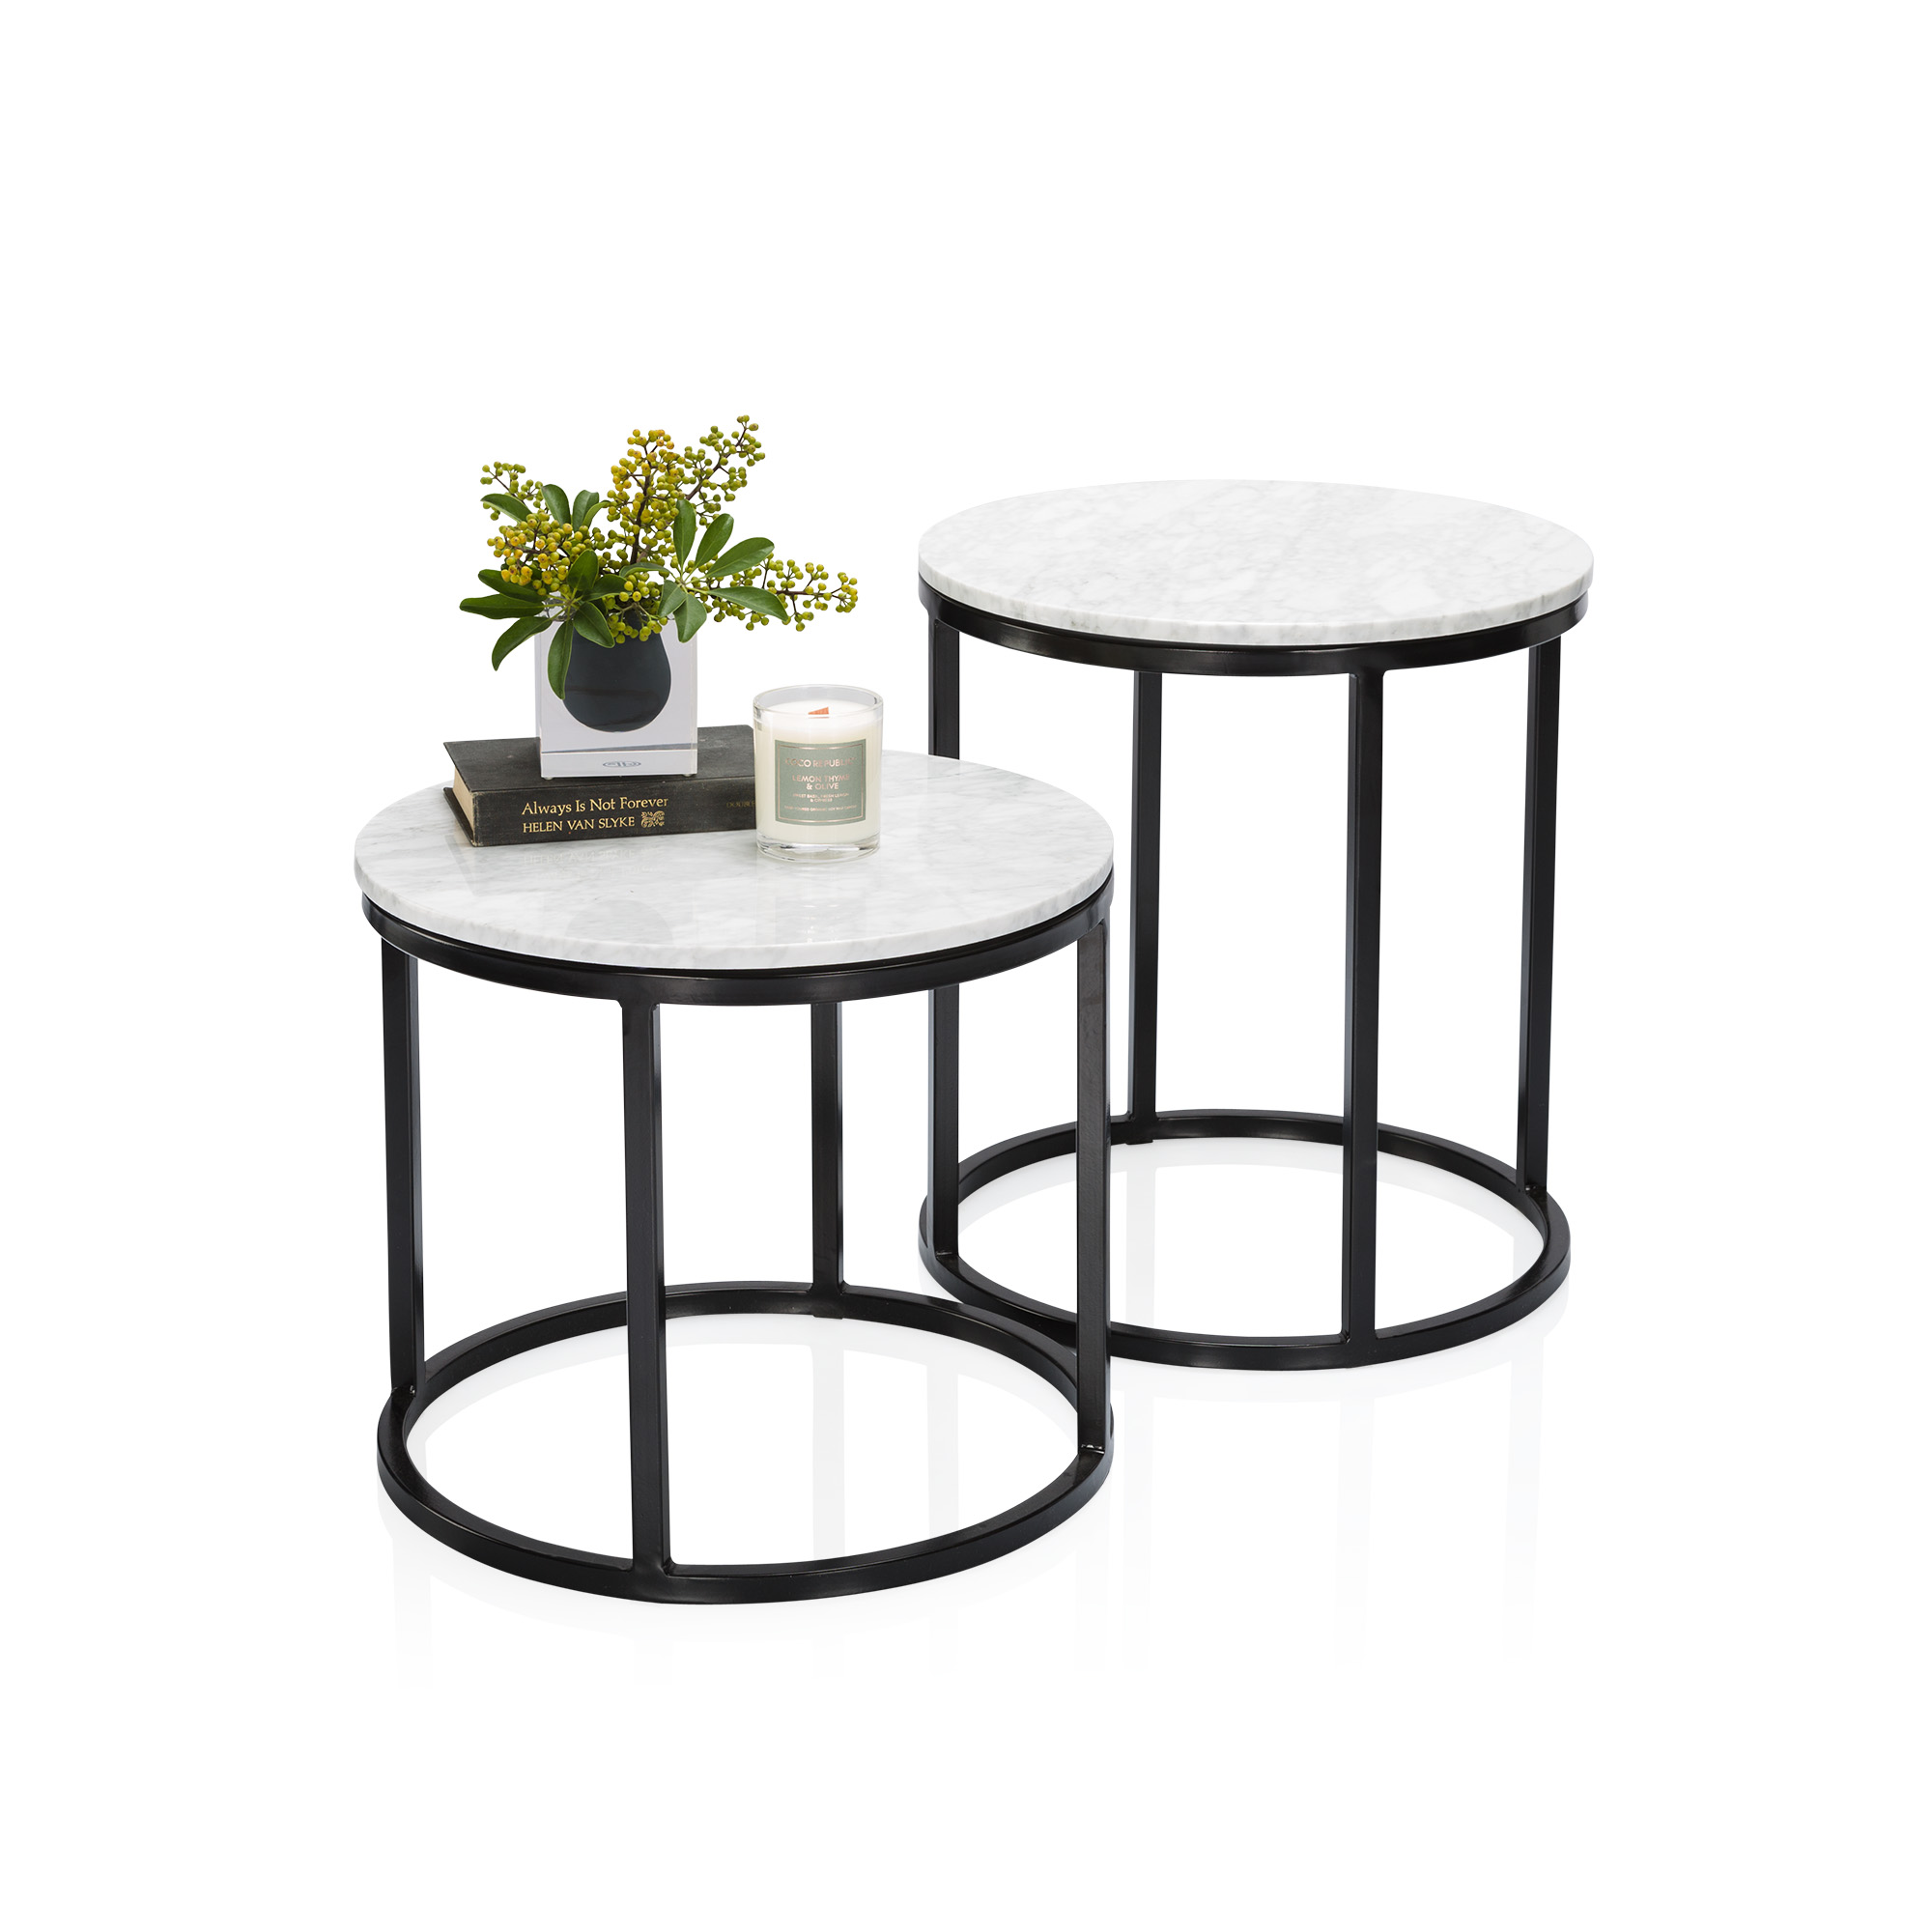 metal glass black round legs target wood marble marblegold white top table wooden kmart argos upcycled side large tabl plans and small silver gold pedestal dark woodworking accent